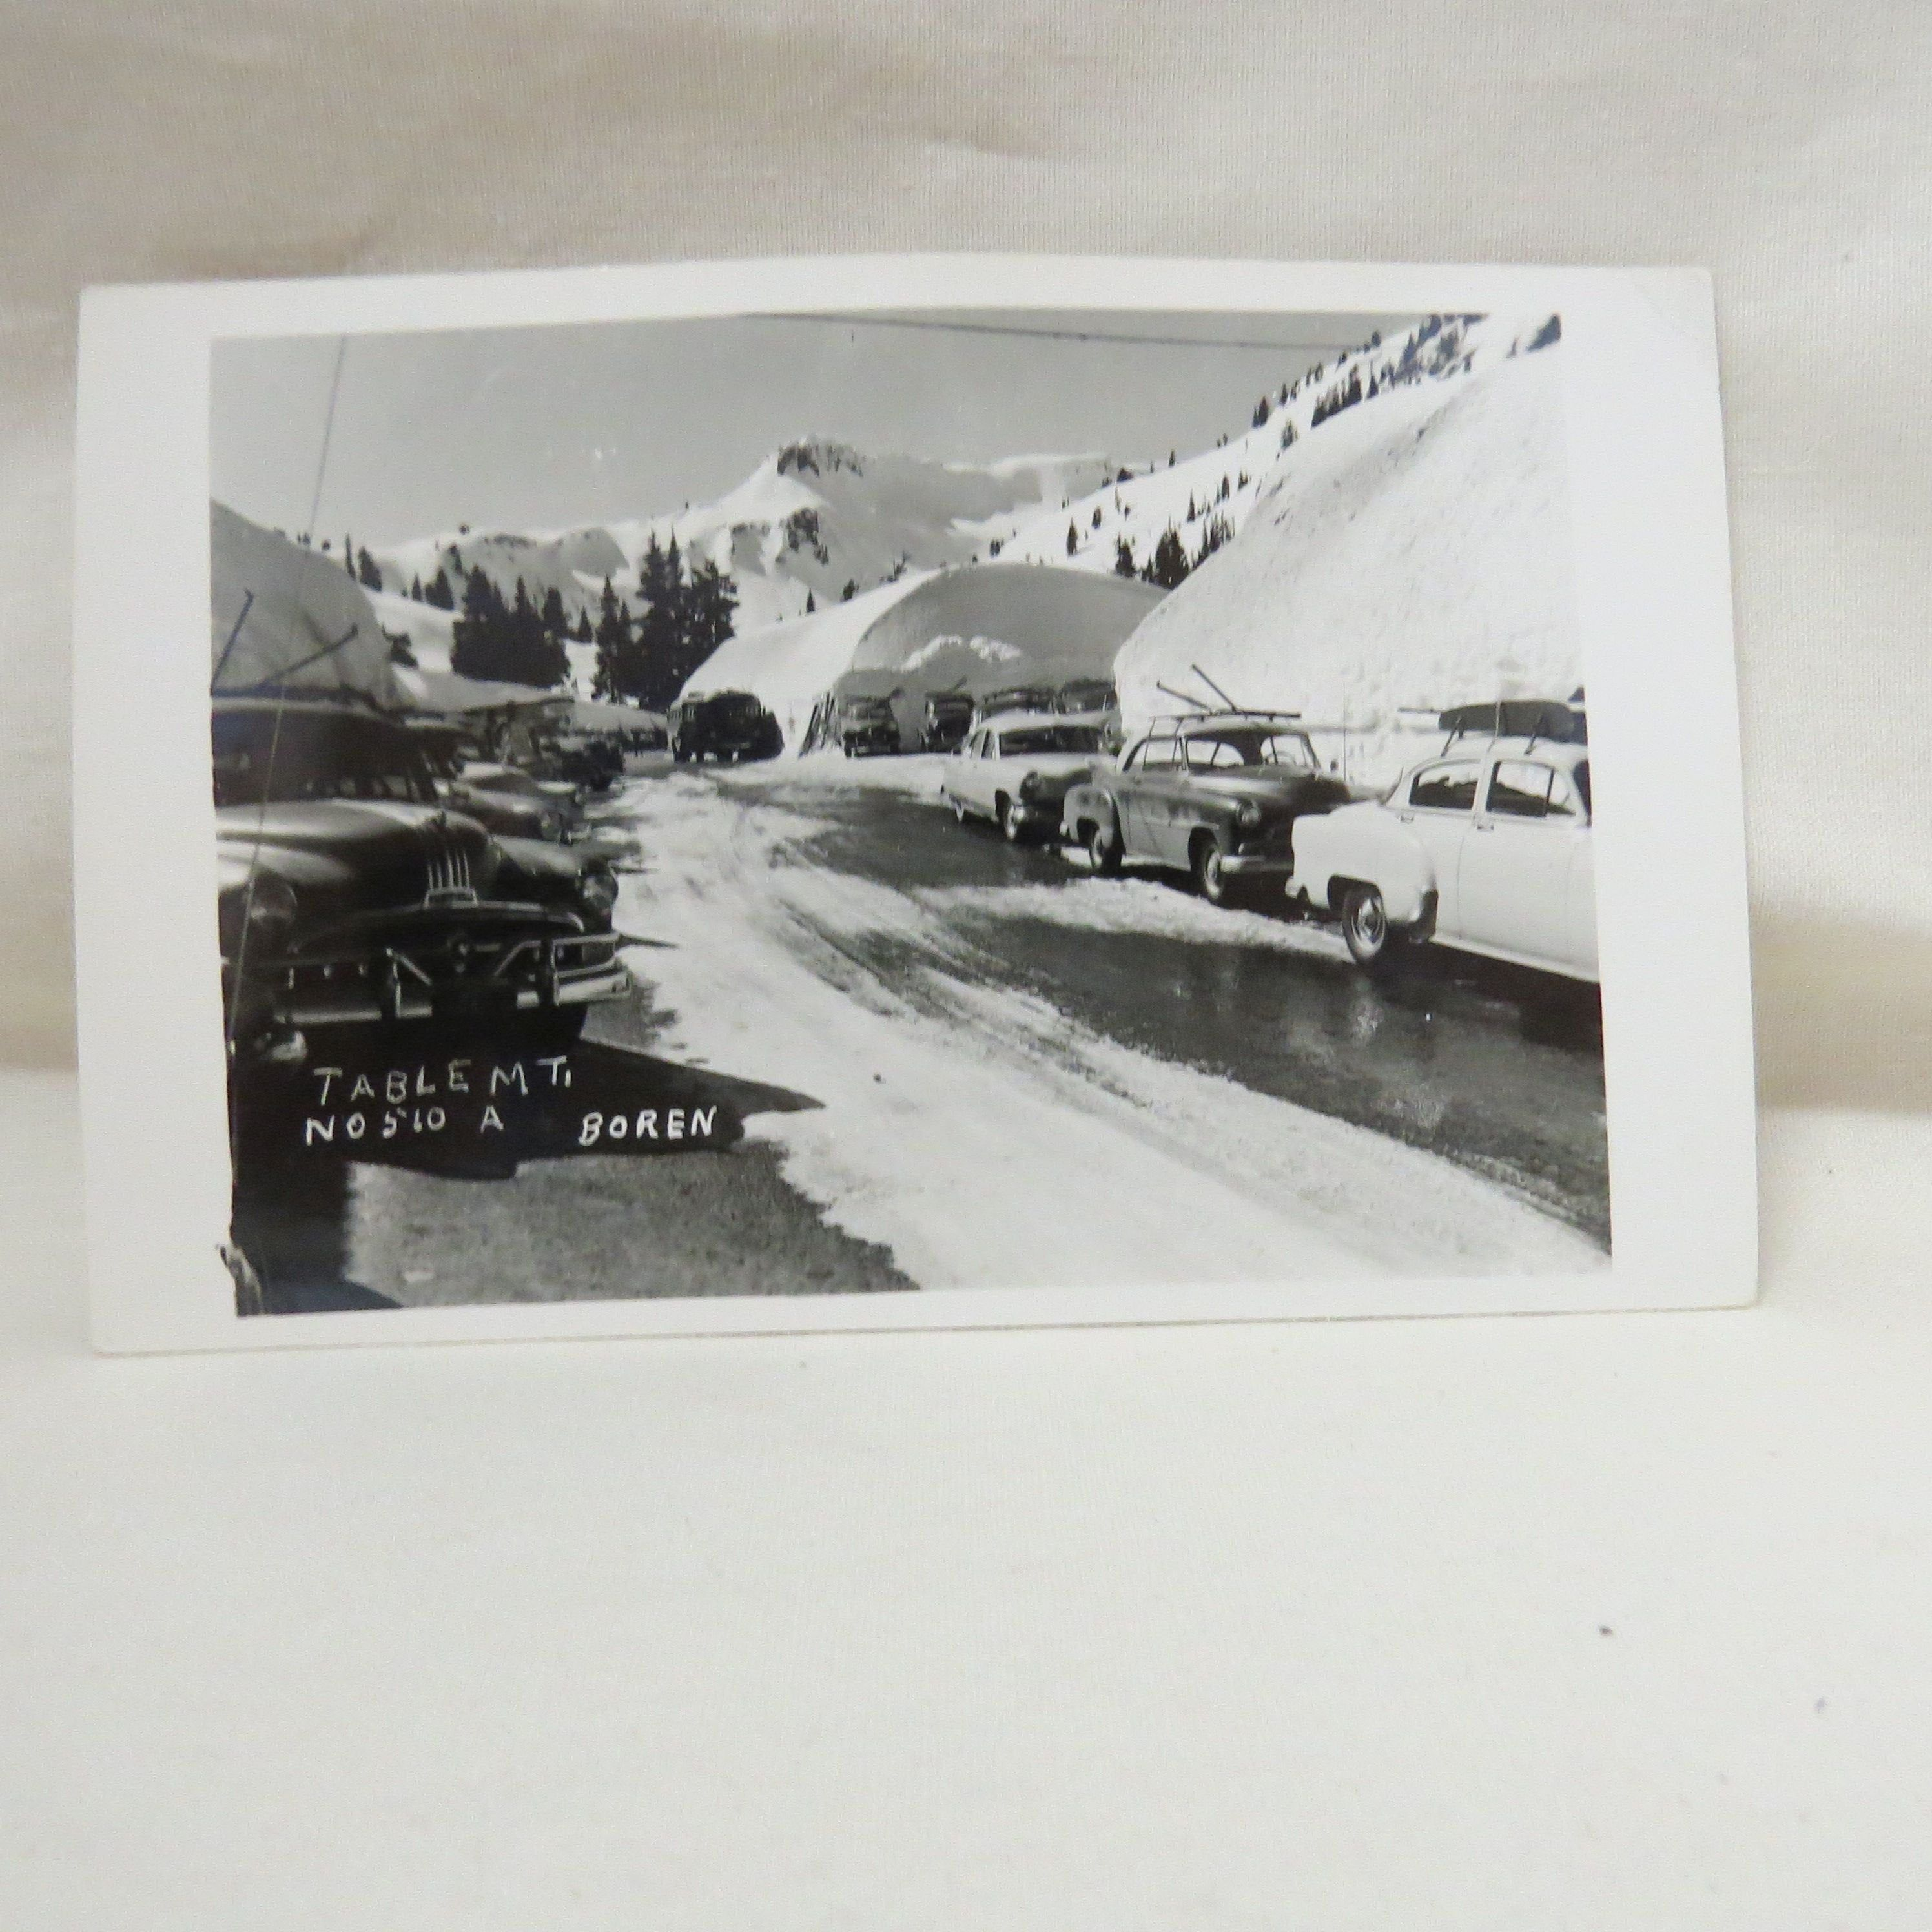 Vintage Postcard Amish Family Lancaster County Pennsylvania White Border Unused Unmailed Unposted